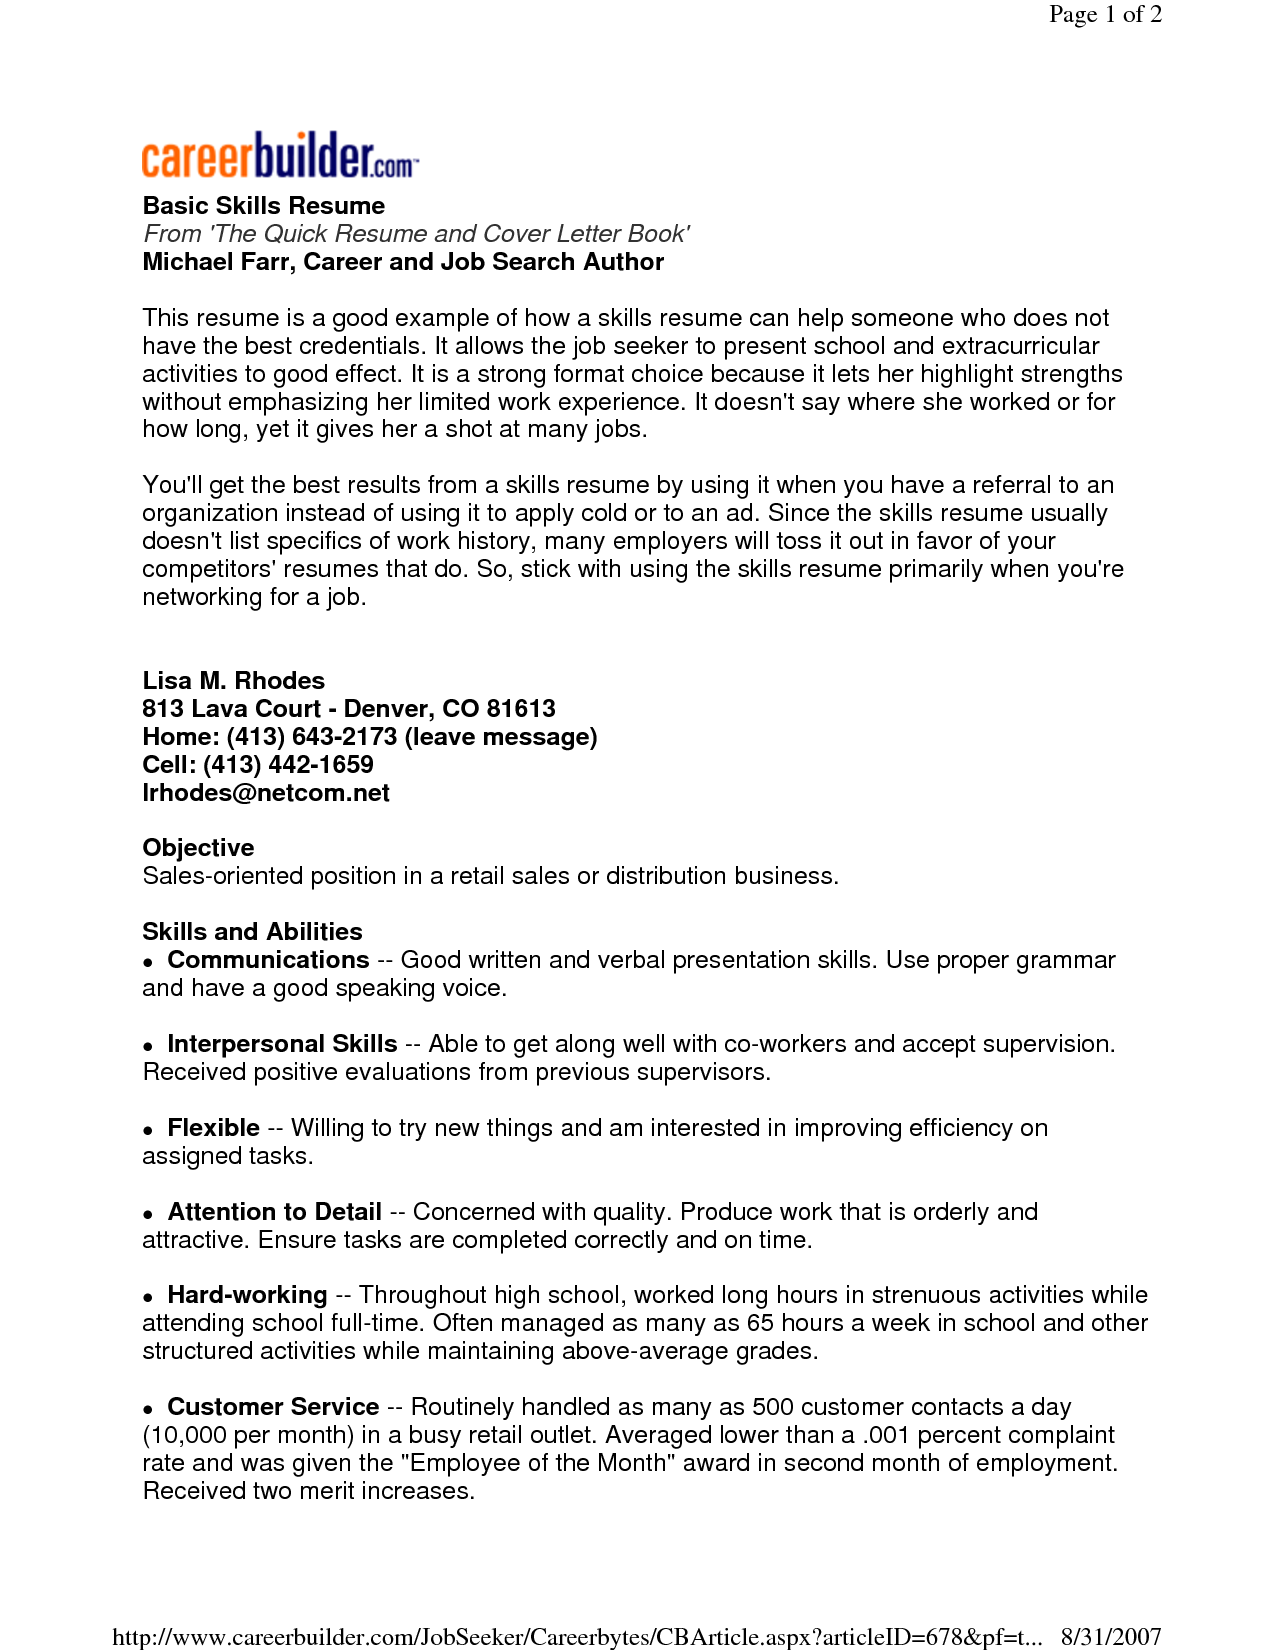 [ Example Resume Basic Computer Skills Summary Skill Sample Resumes Cover  Letters Interviews Assembly And ]   Best Free Home Design Idea U0026 Inspiration  Skills Sample Resume